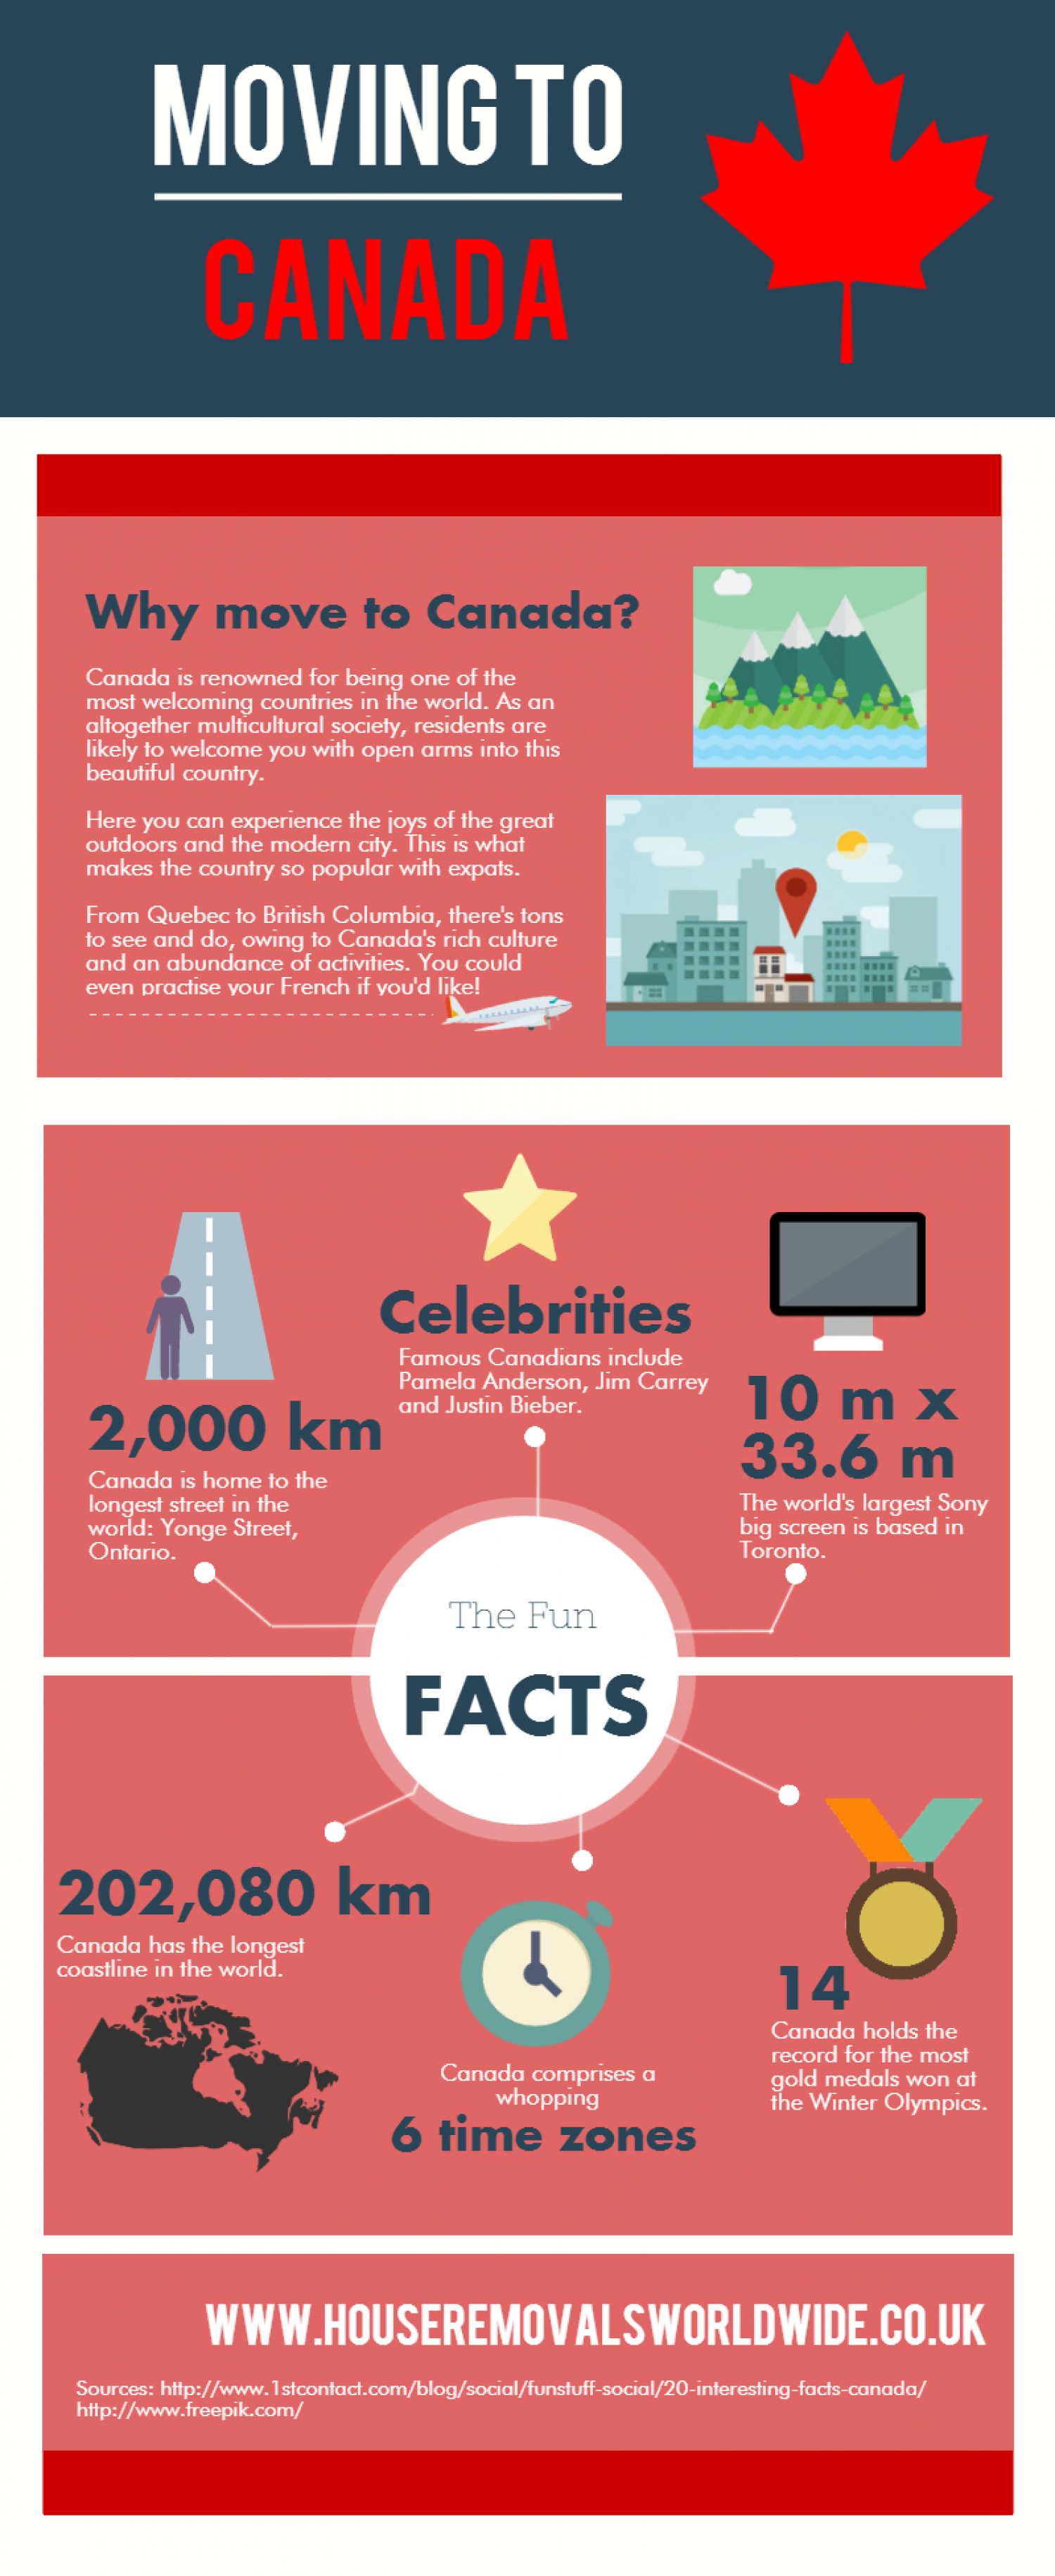 Moving to Canada Infographic